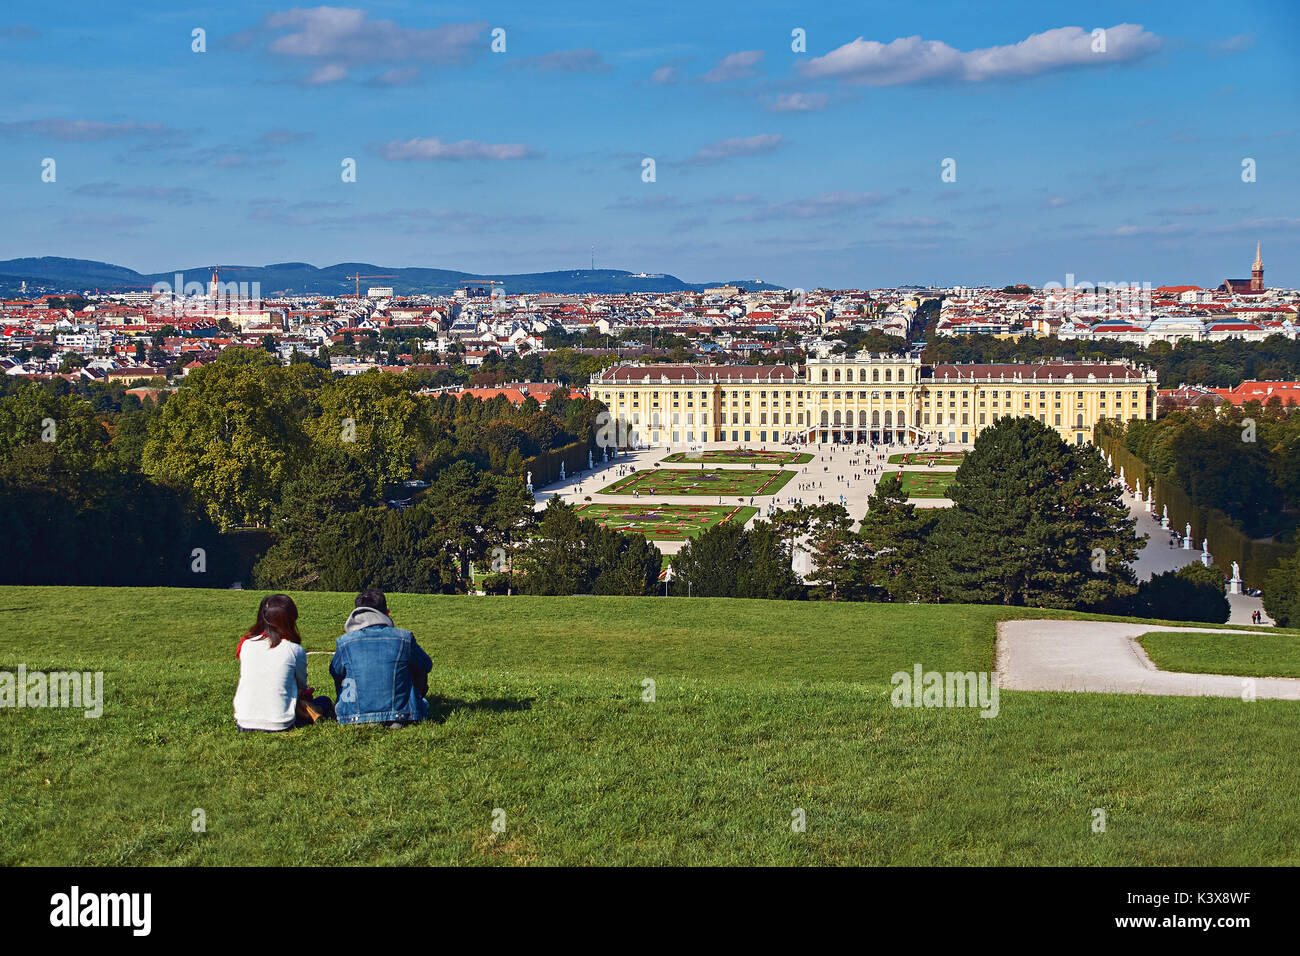 Vienna, Austria - September 24, 2014: Couple of tourists sitting on the grass with the view of Schonbrunn palace Stock Photo